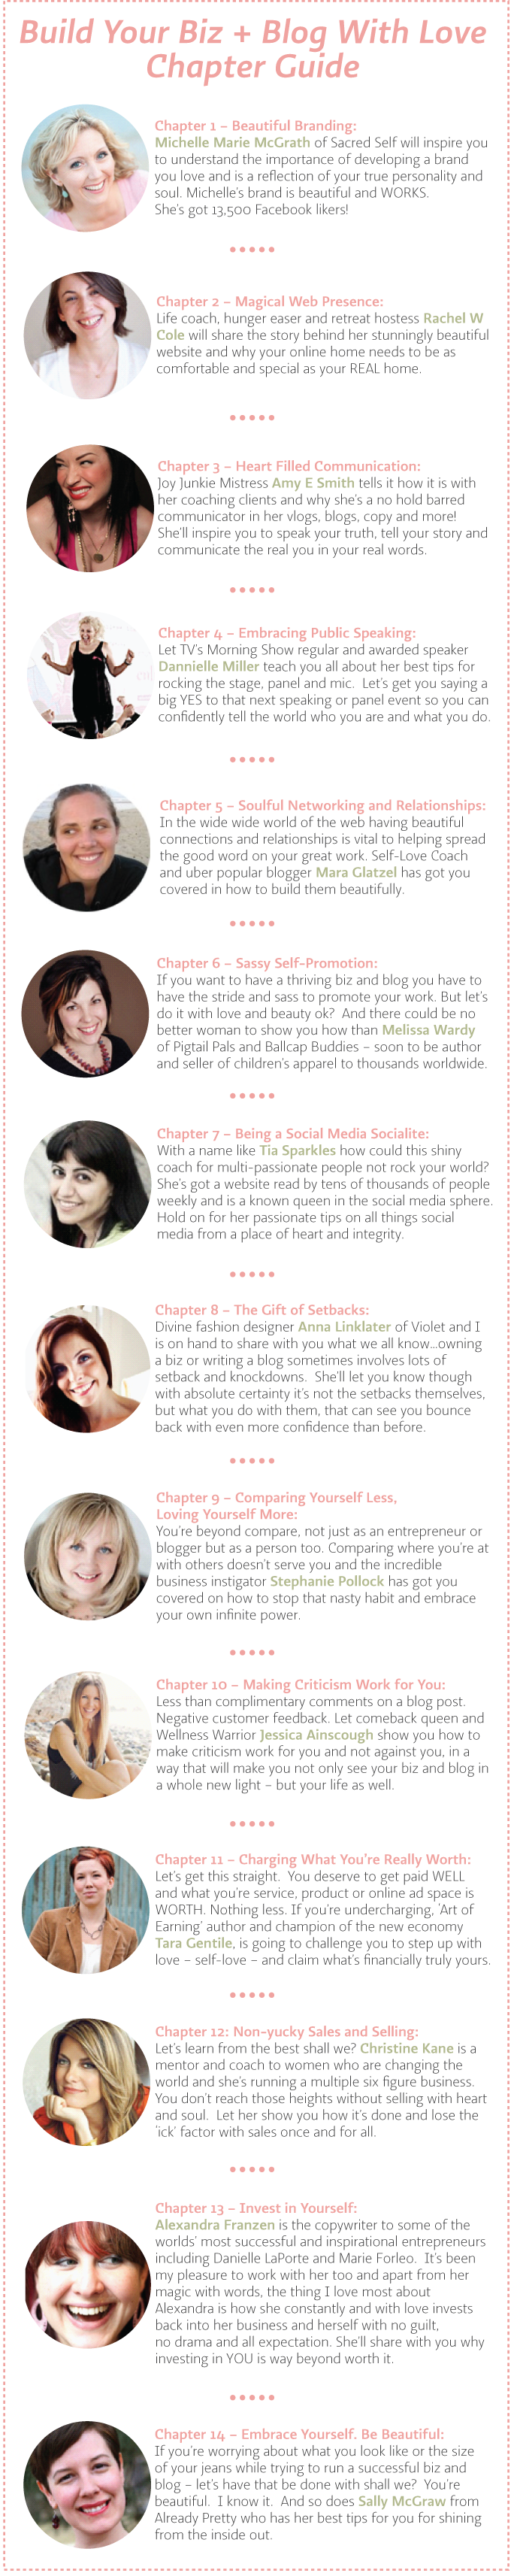 Build Your Biz + Blog With Love Chapter Guide